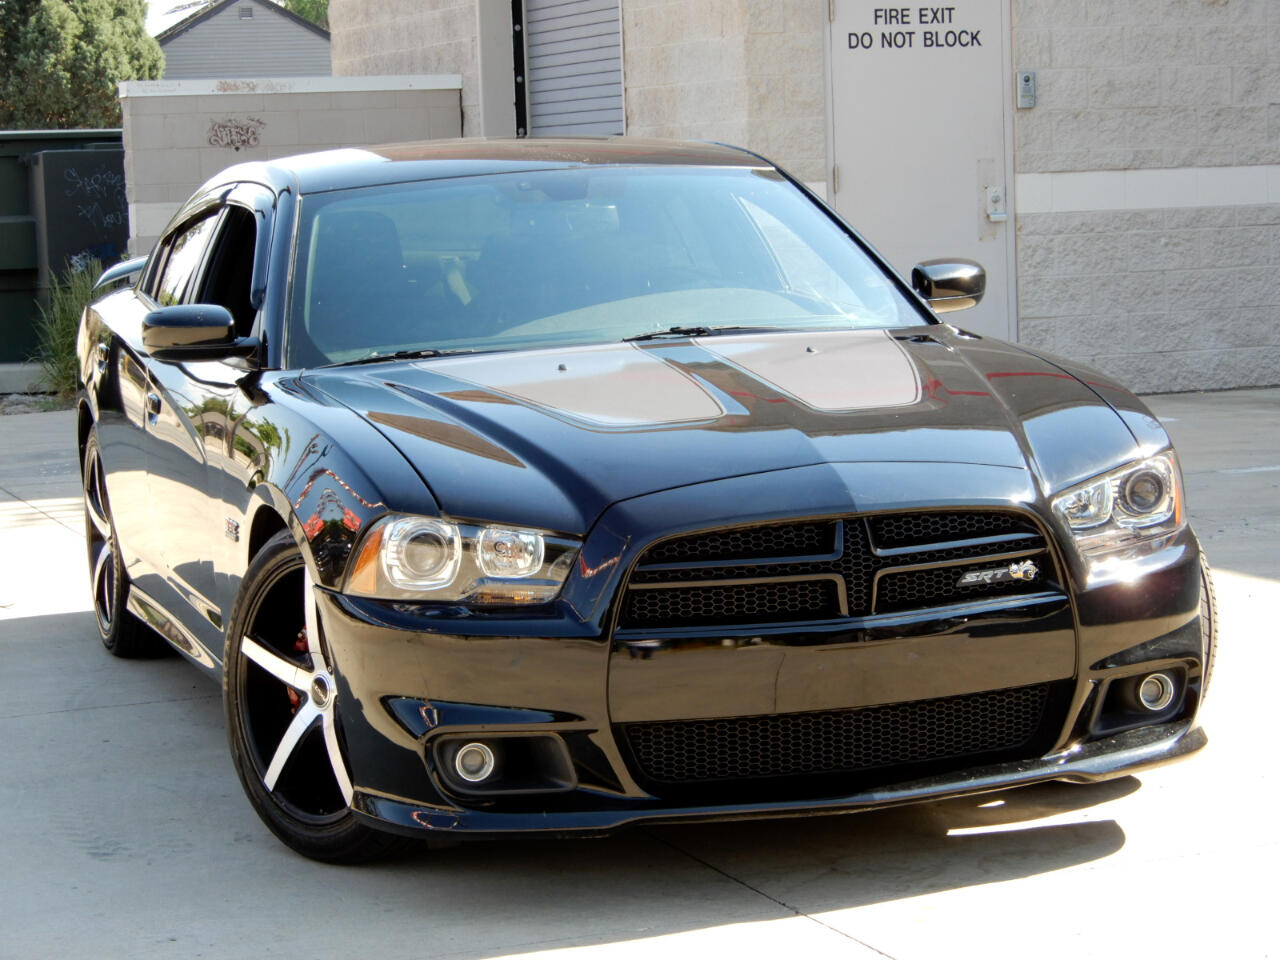 Dodge Charger 4dr Sdn SRT8 Super Bee RWD 2013